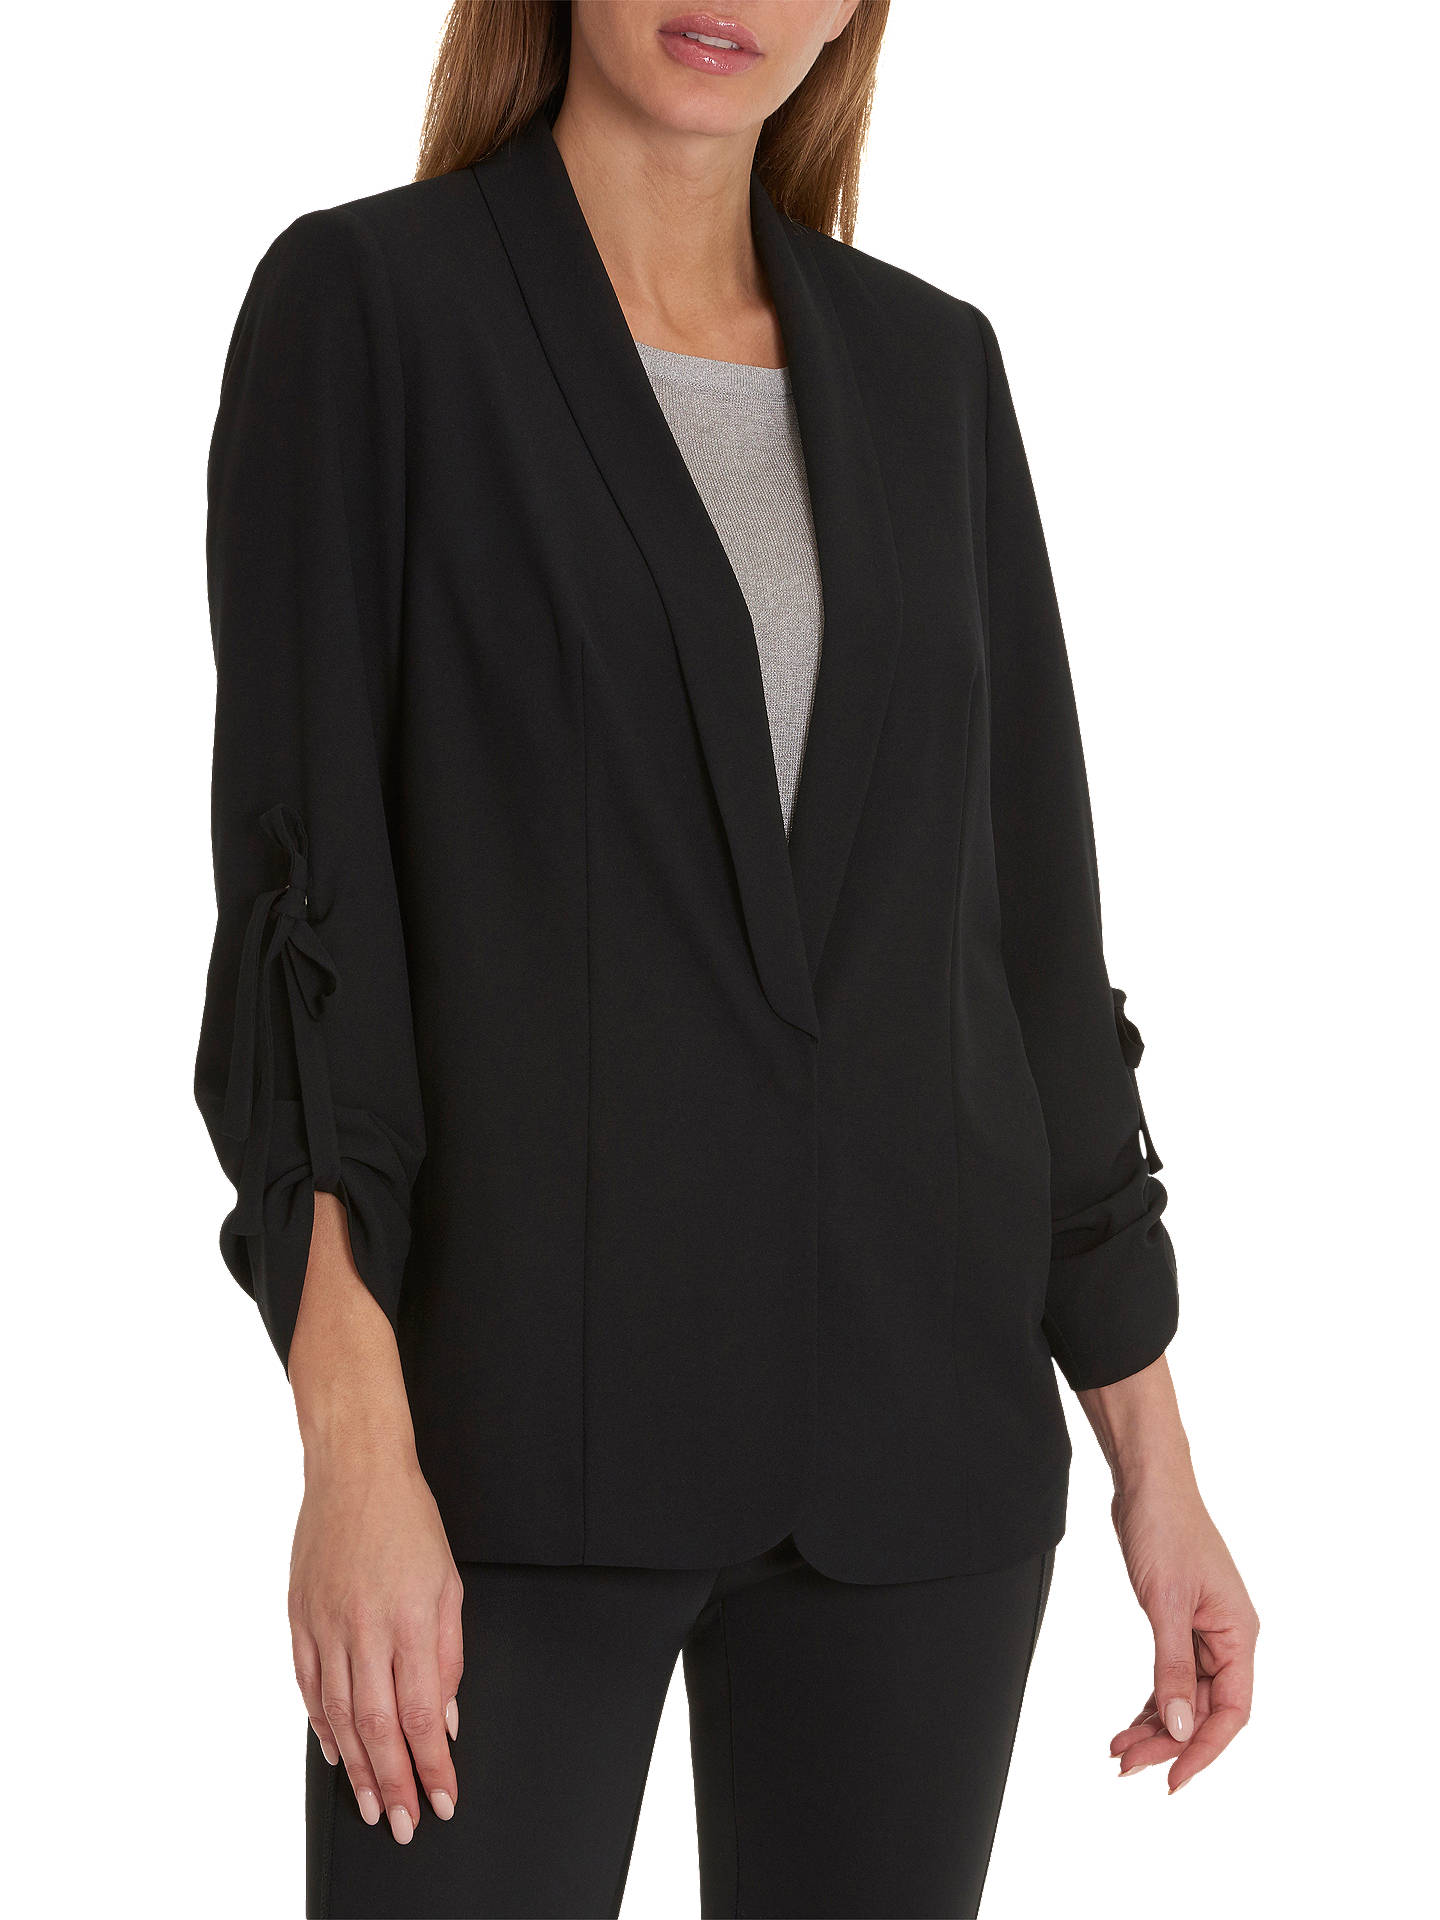 BuyBetty & Co. Long Crepe Jacket, Black, 10 Online at johnlewis.com